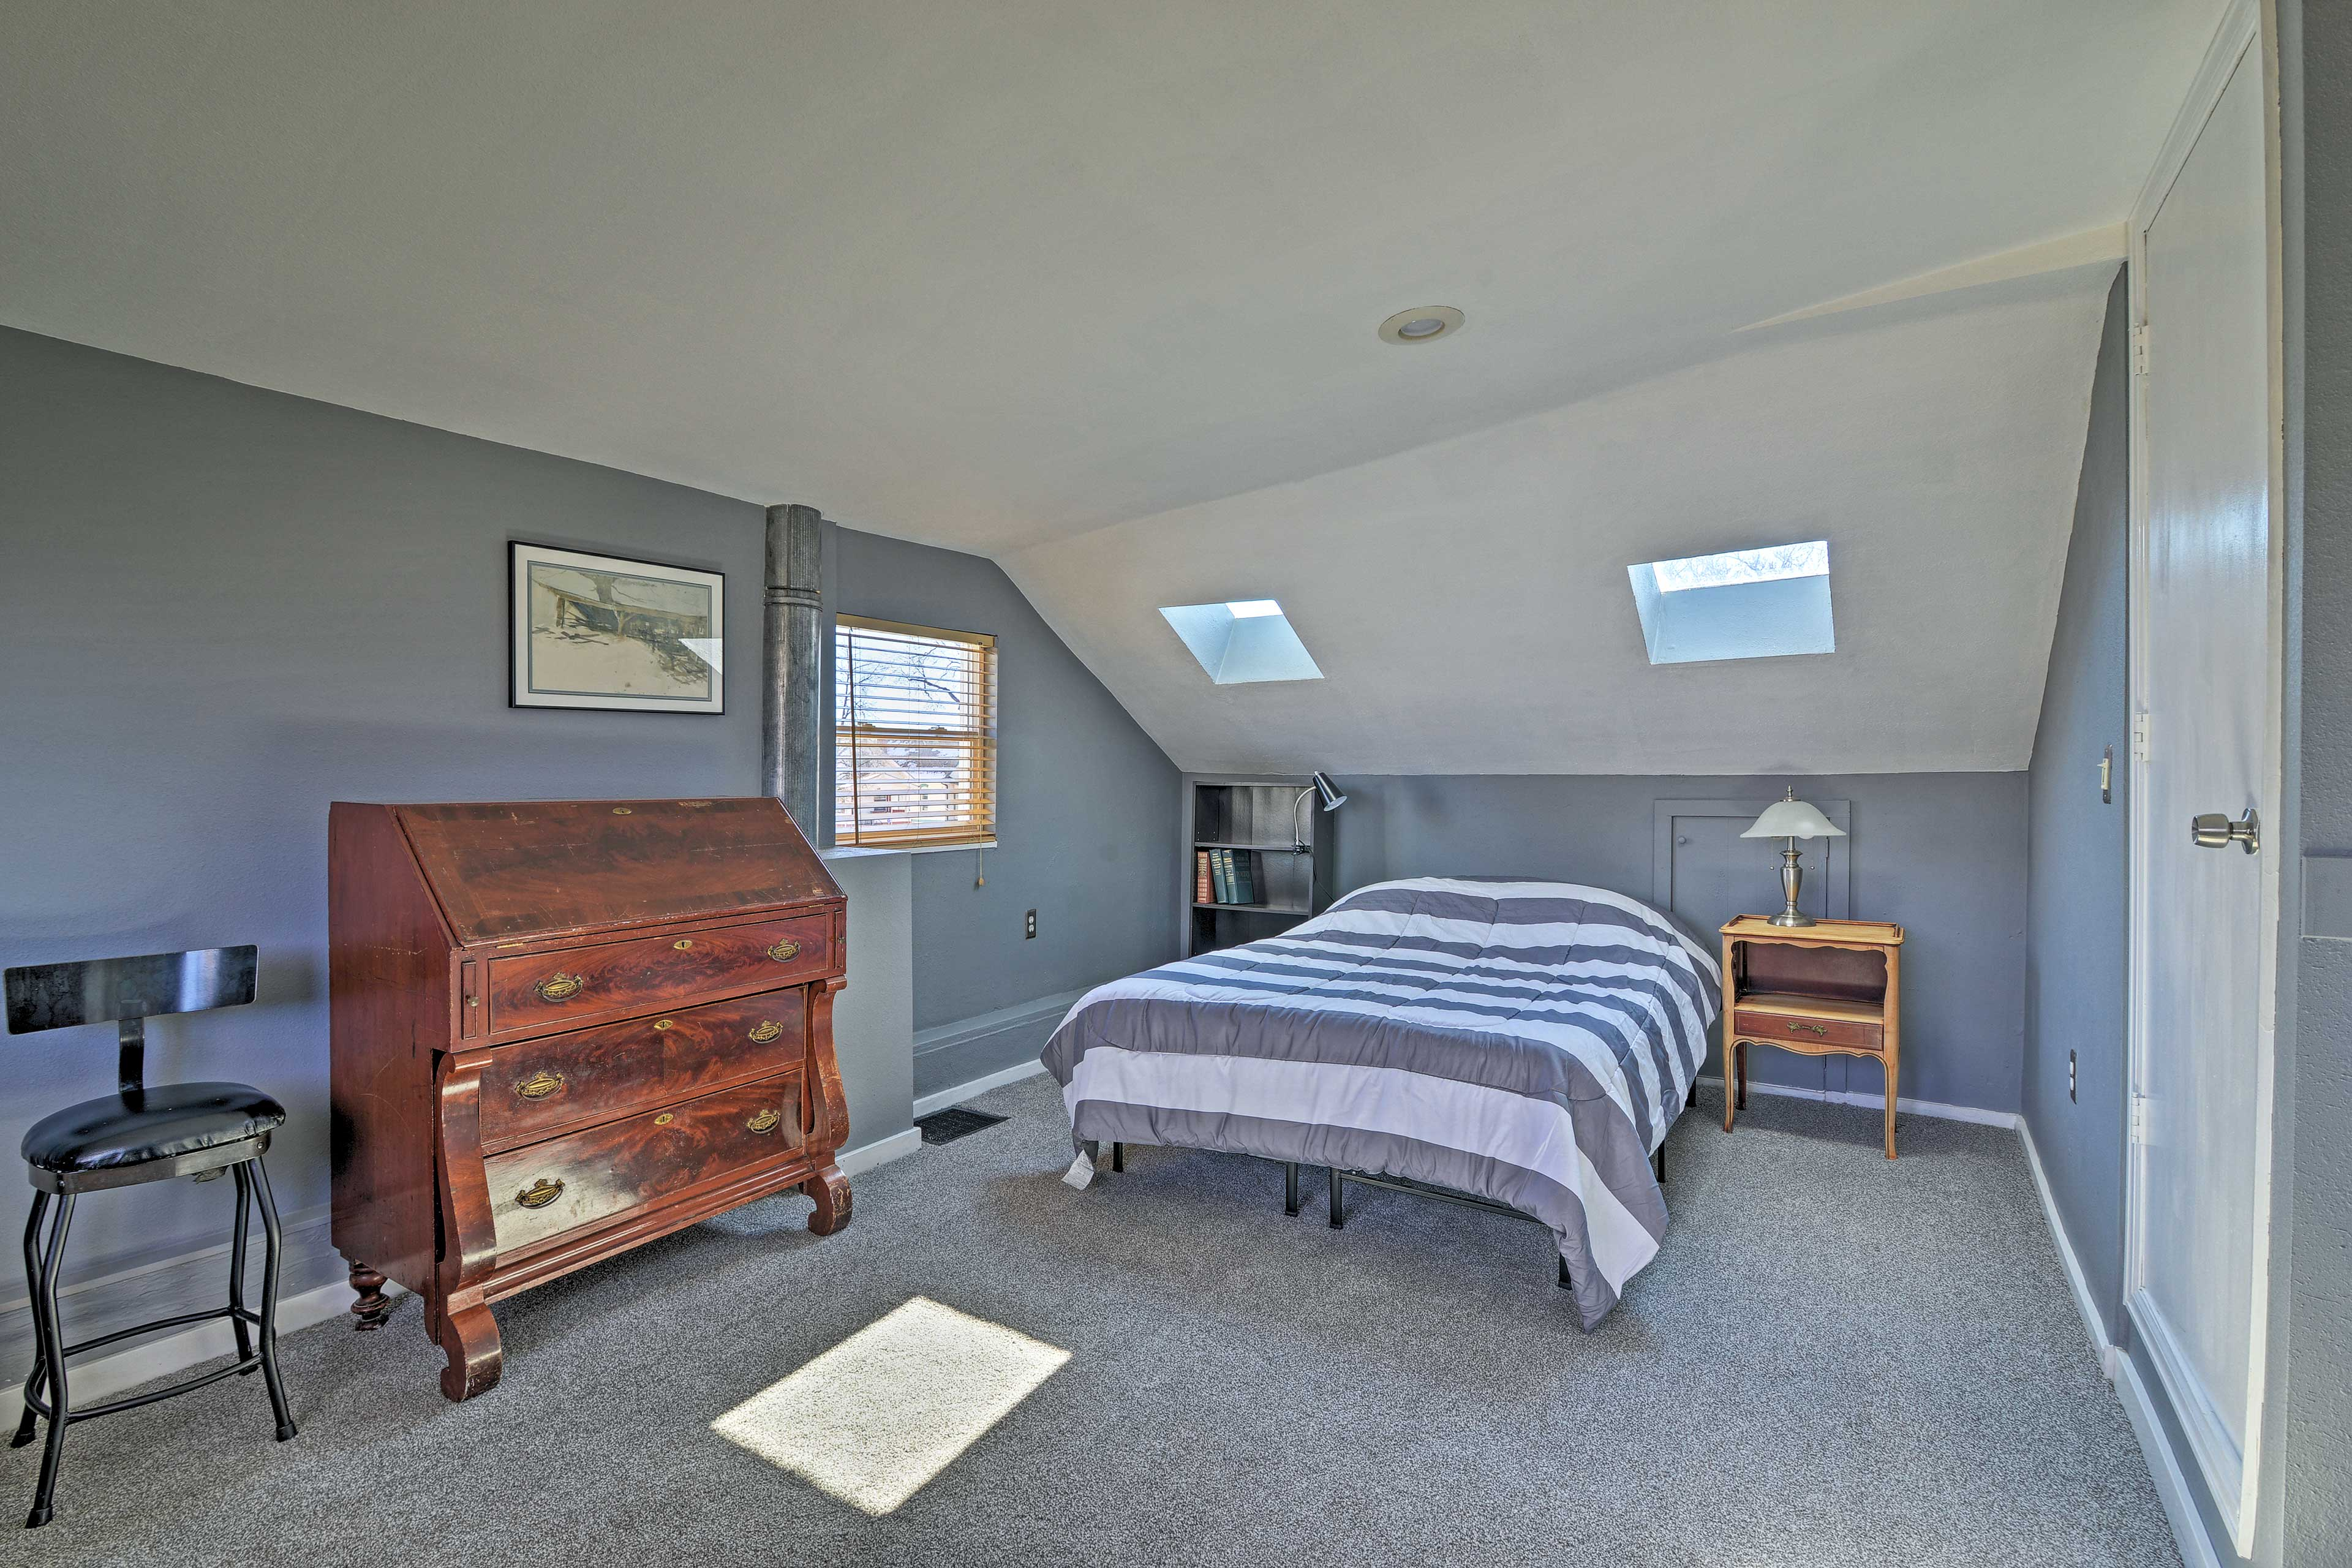 The master bedroom offers a comfortable king mattress.